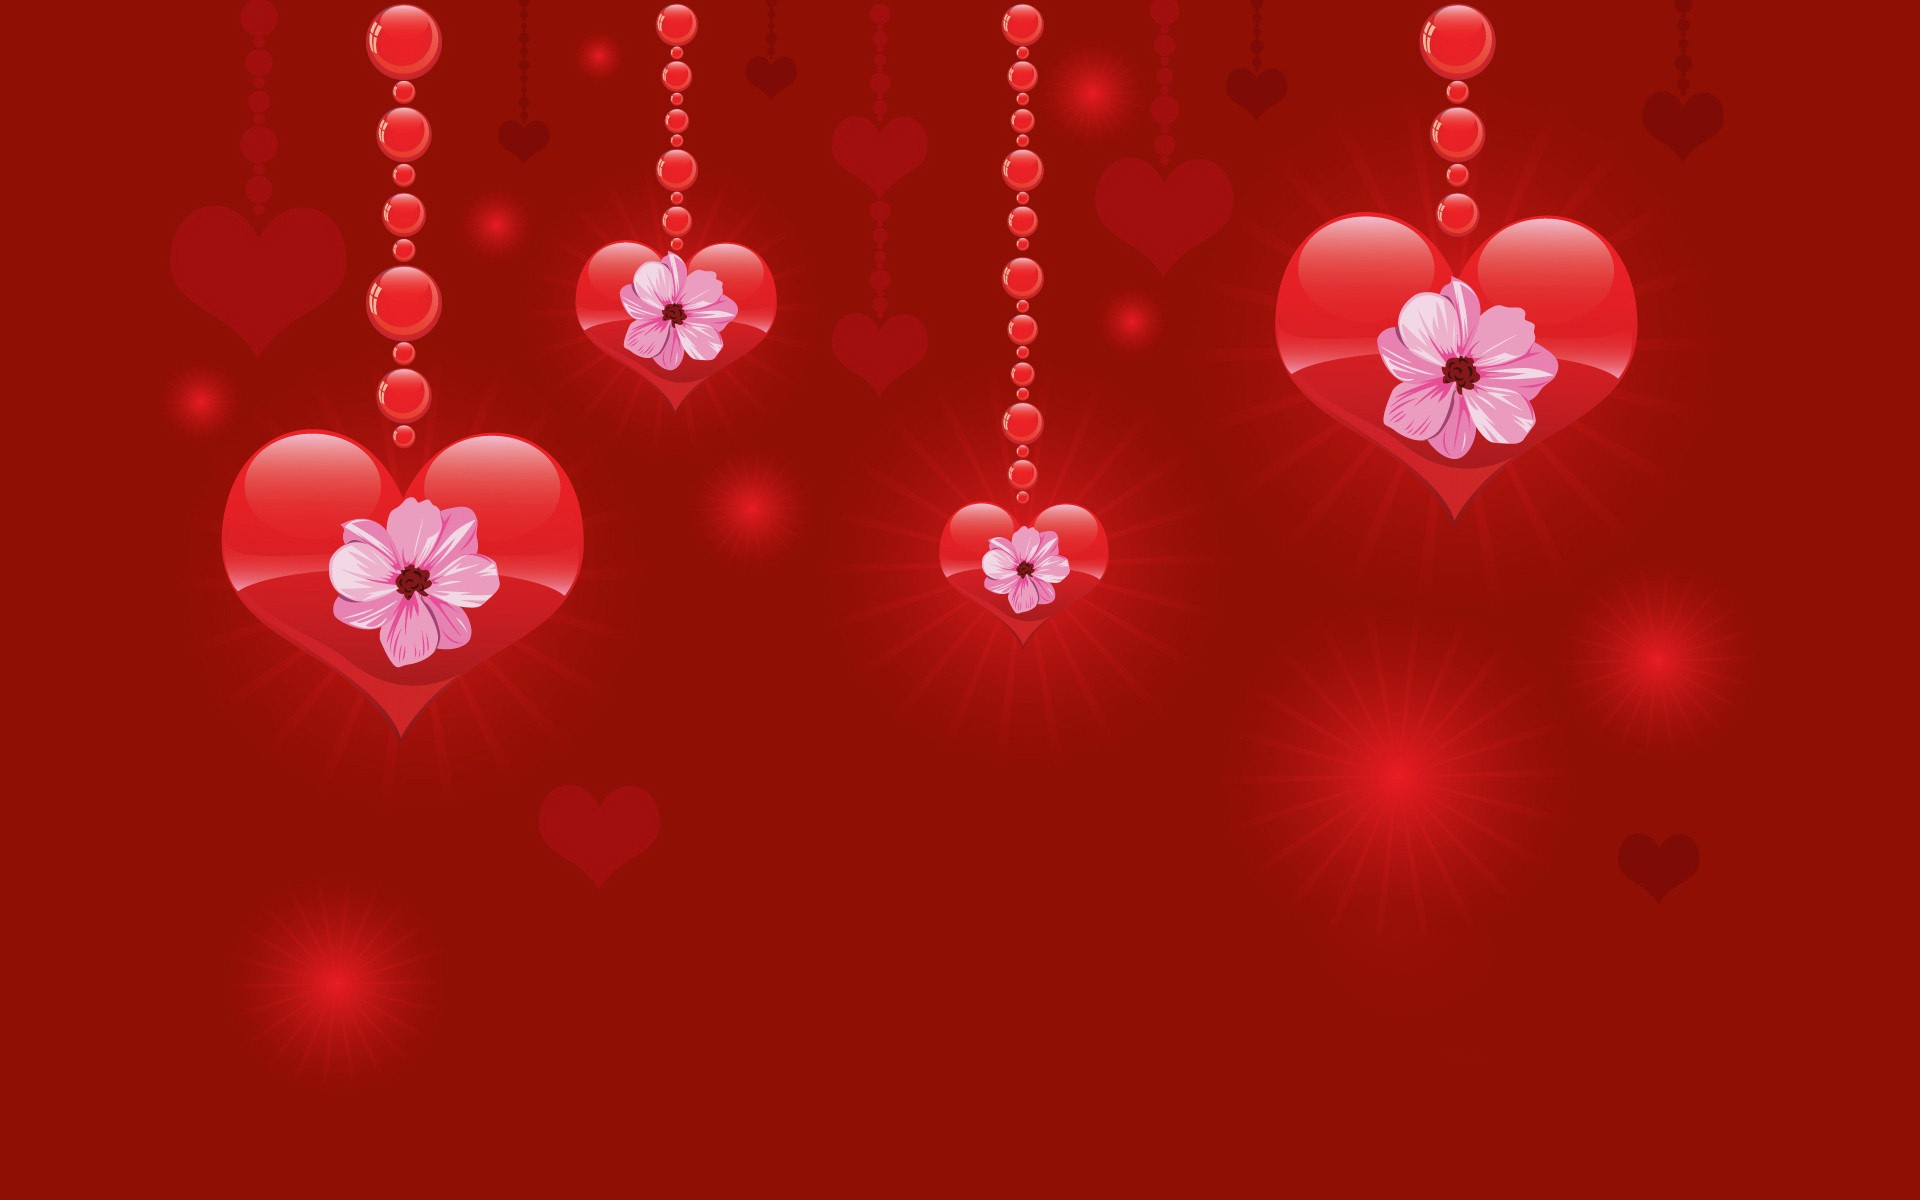 Valentines Day Background Download Free High Resolution